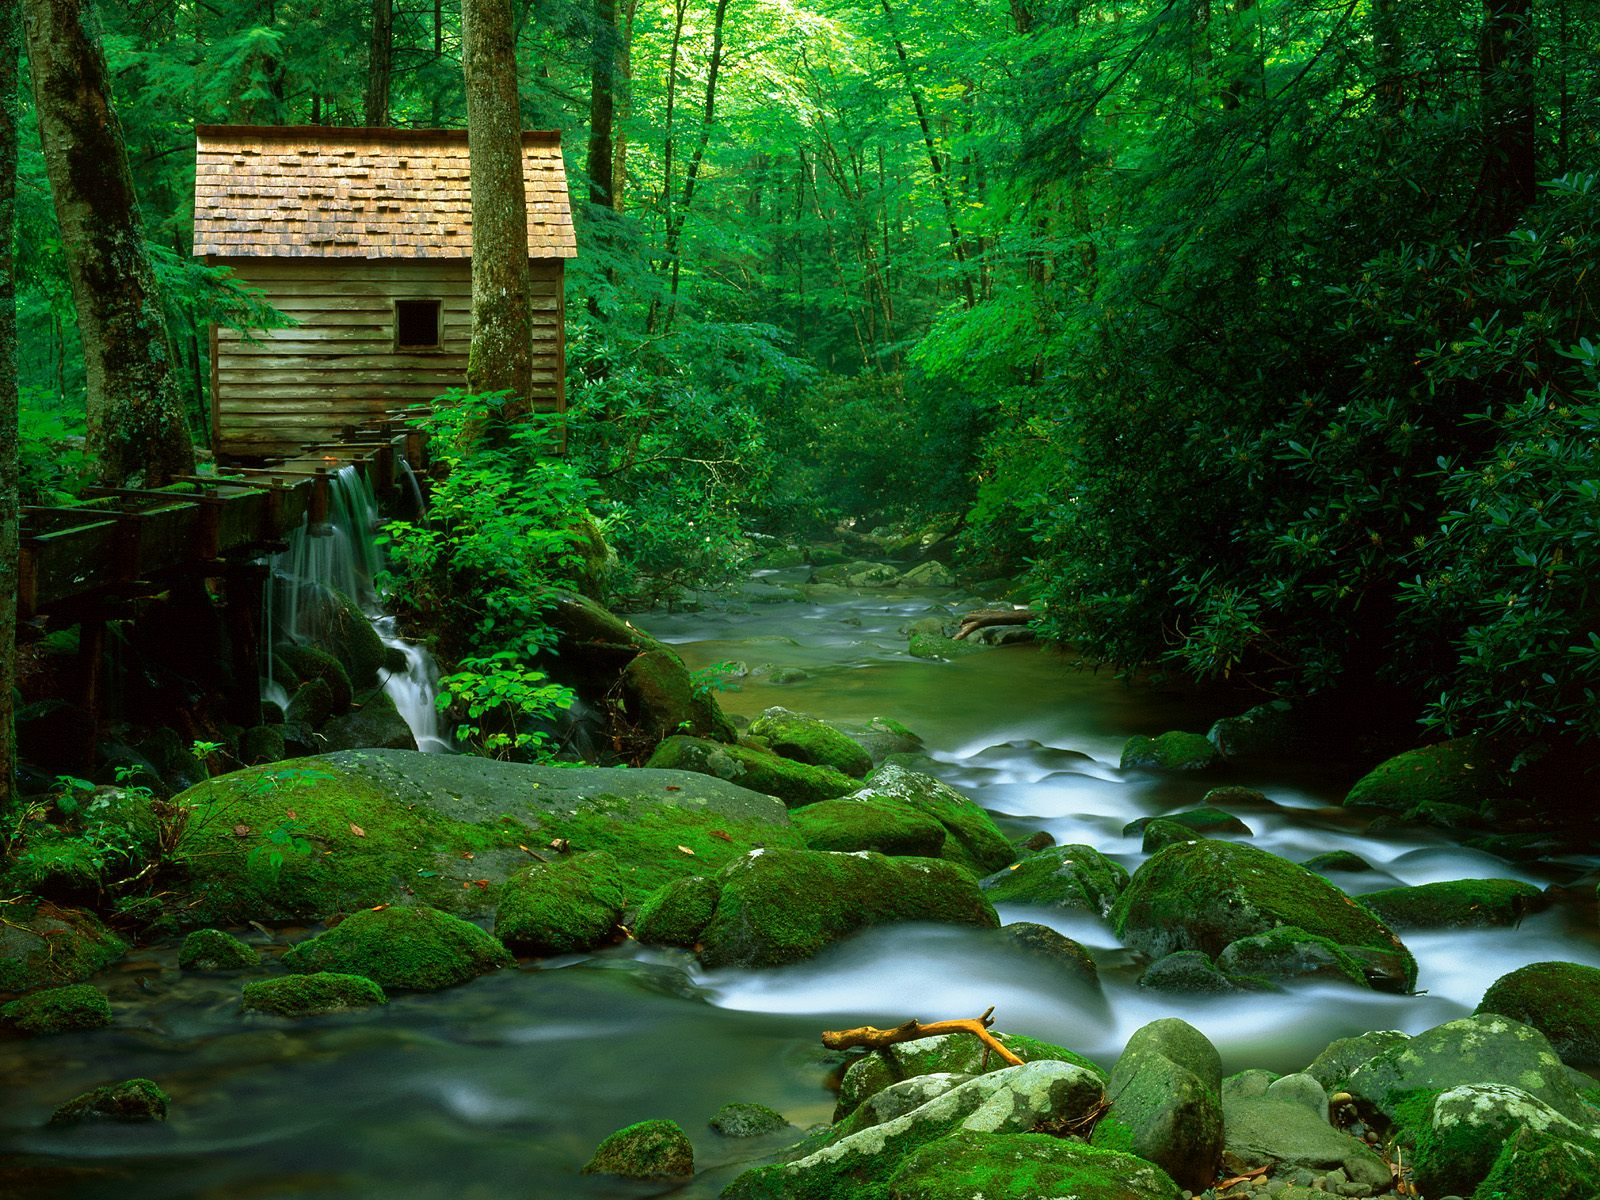 Great-Smoky-Mountain-National-Park-licensed-by-United-States-Congress-1934